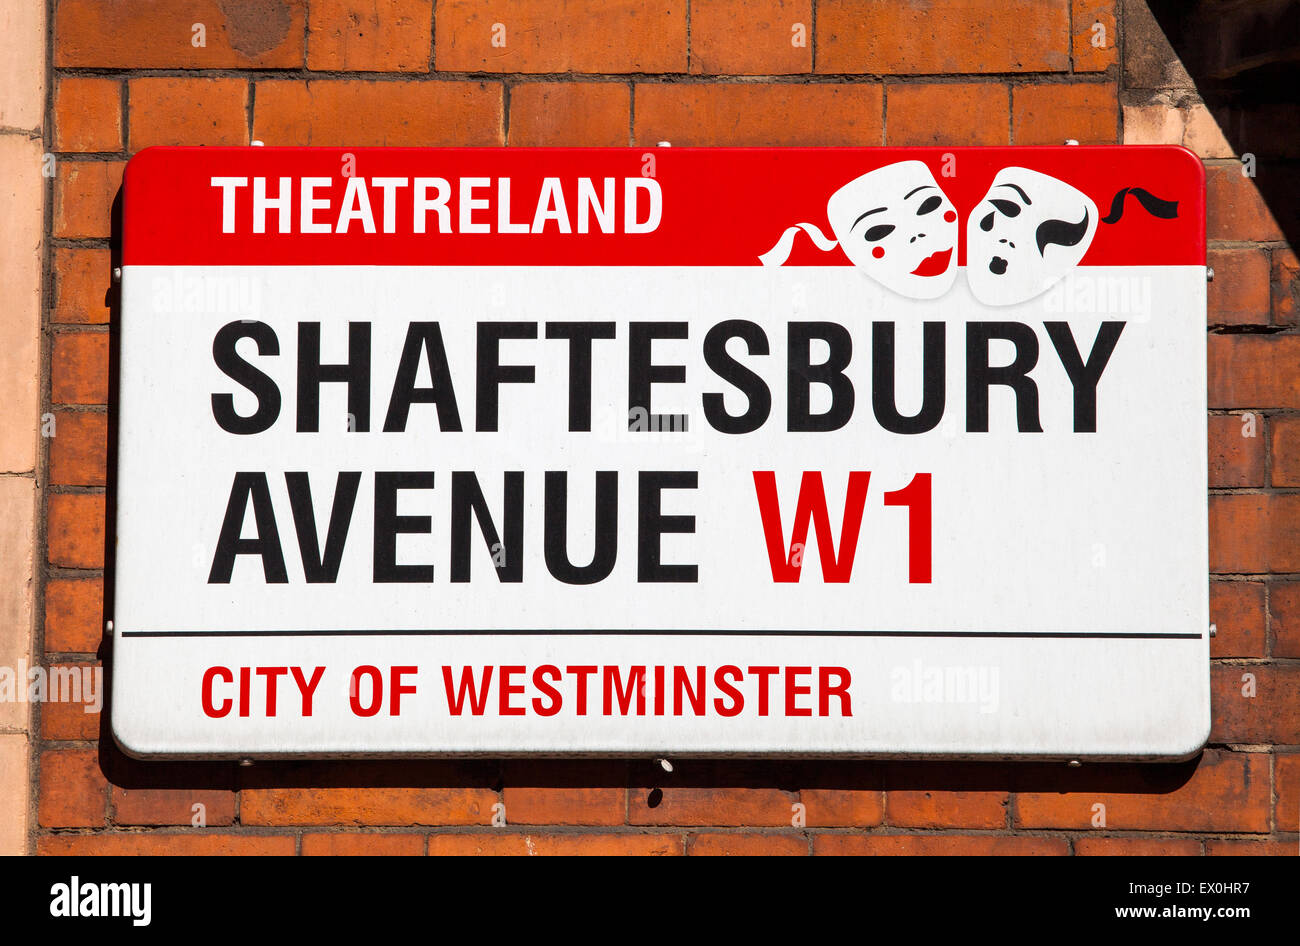 A street sign for Shaftesbury Avenue in London.  The street is famous for being the location of many theatres and - Stock Image